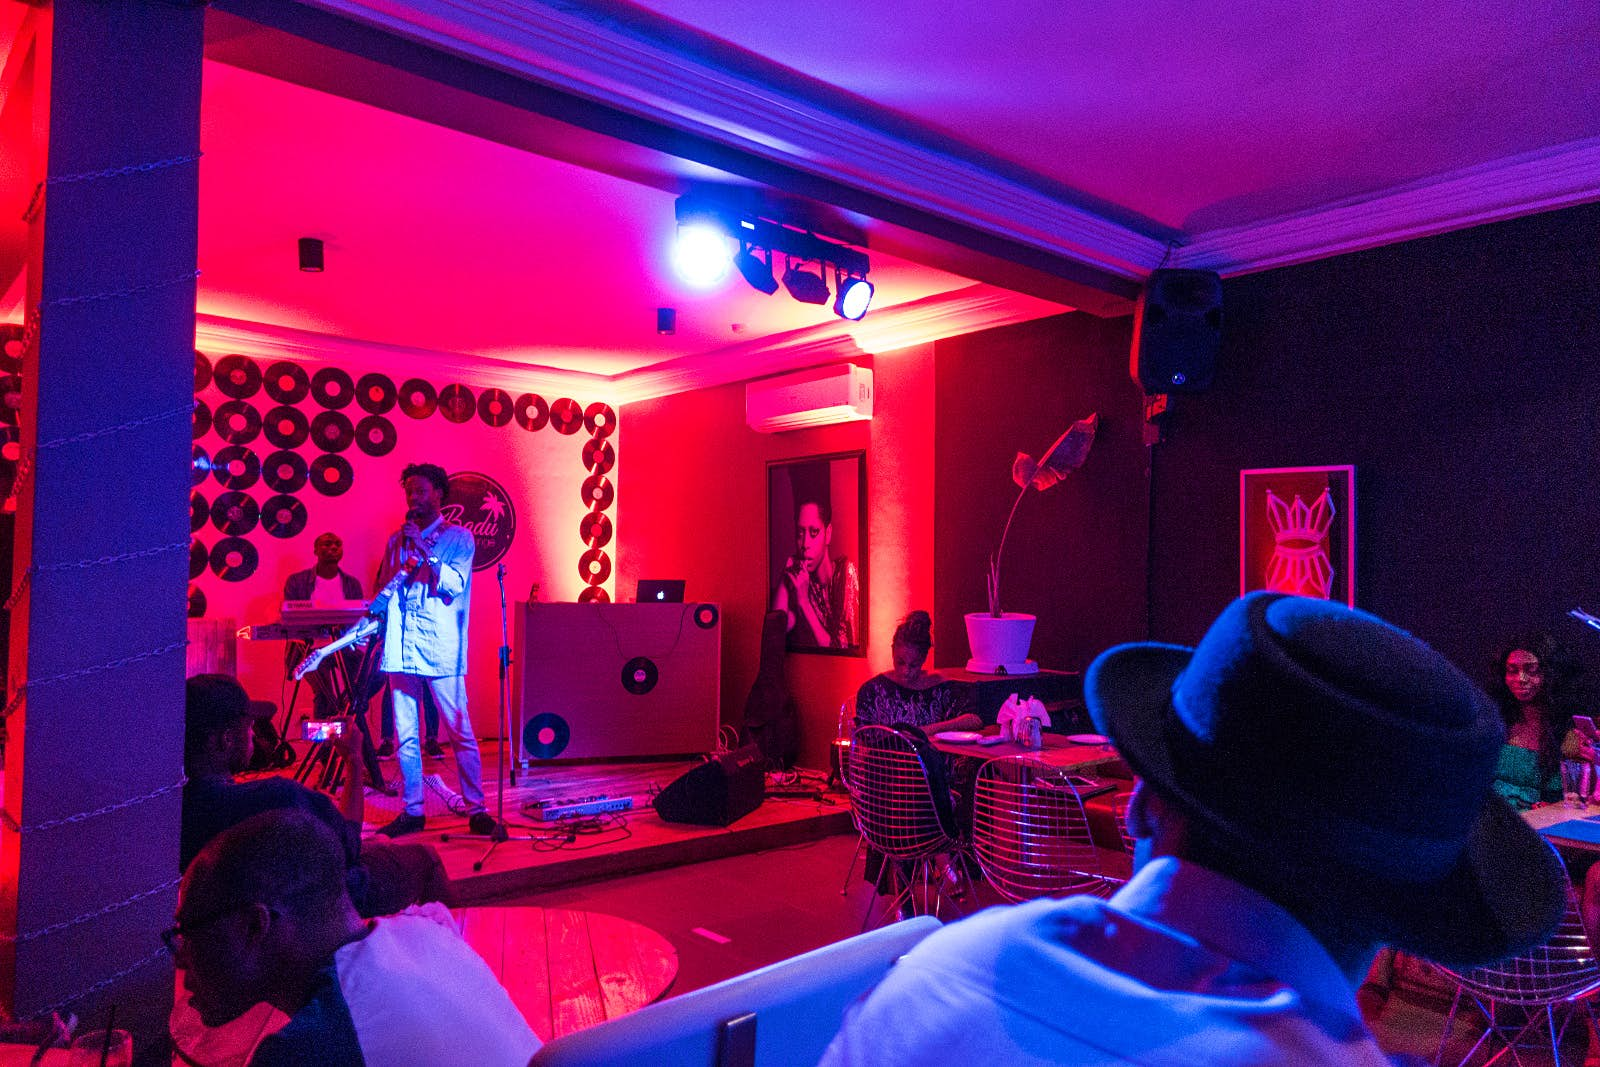 A small stage and room glow red, with a singer on stage holding a guitar and microphone. The back wall of the stage is decorated with a pattern of old vinyl records © Elio Stamm / Lonely Planet